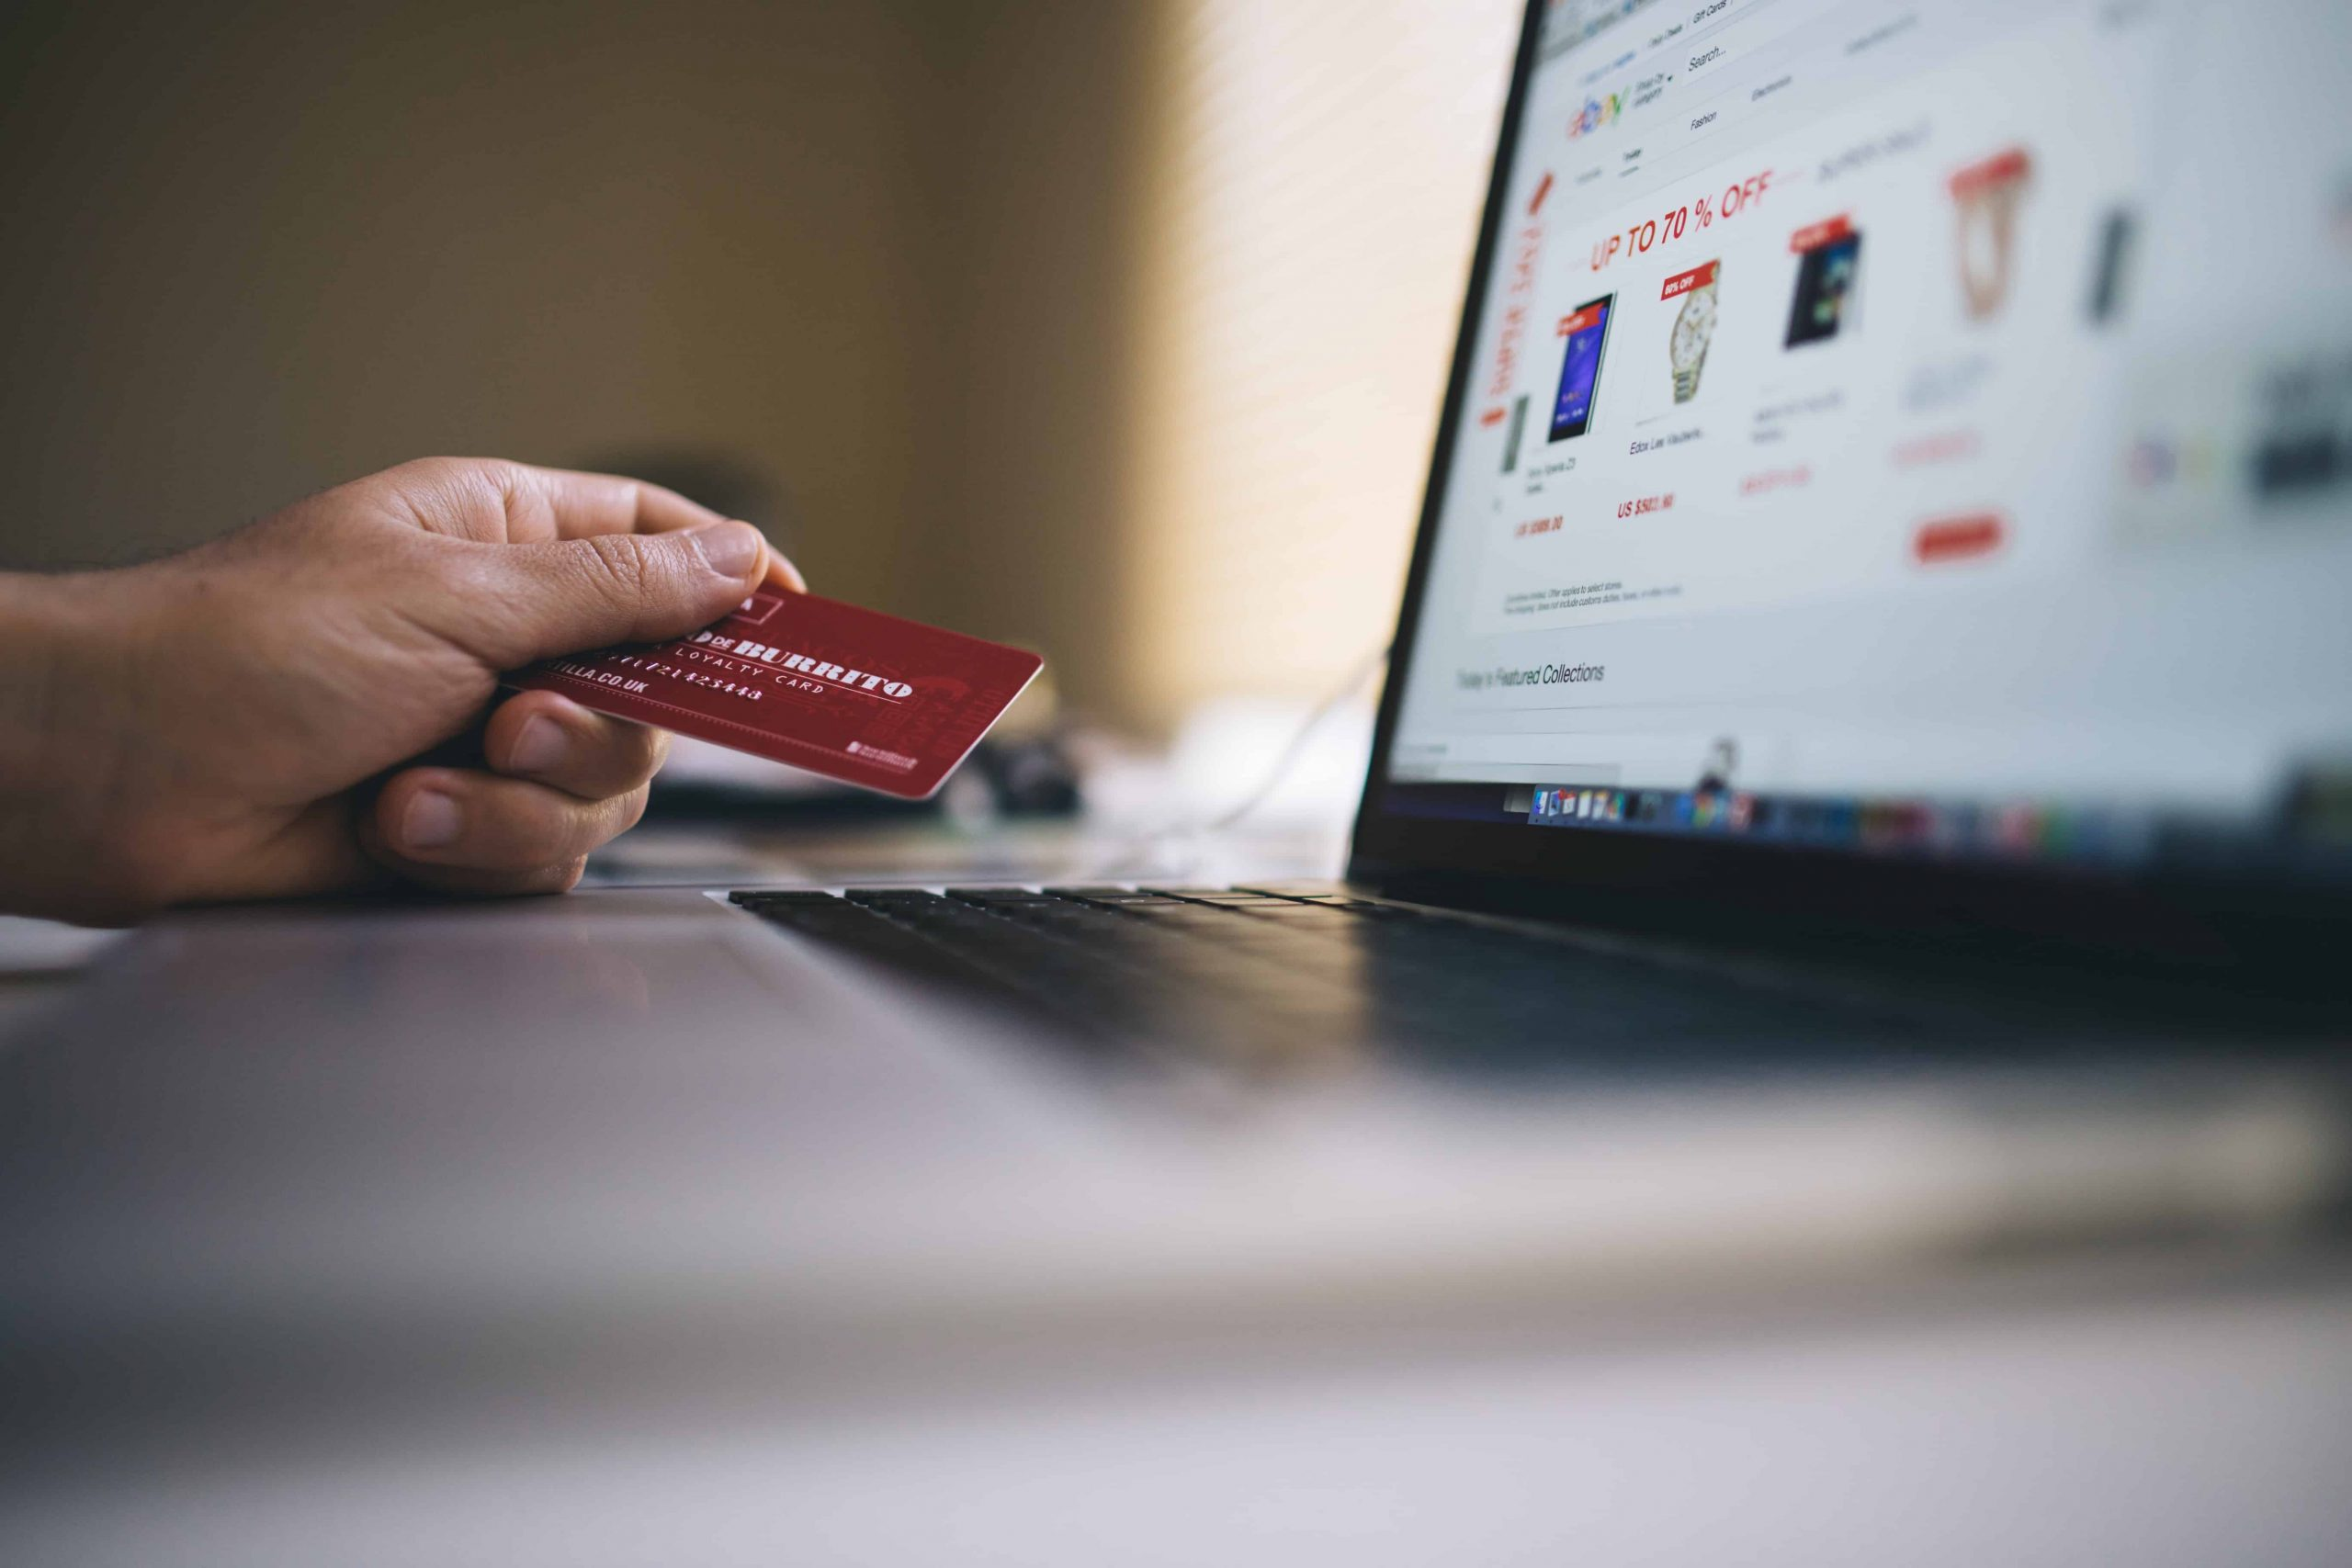 What You Should Know to Choose the Right Payment Gateway for Your Business